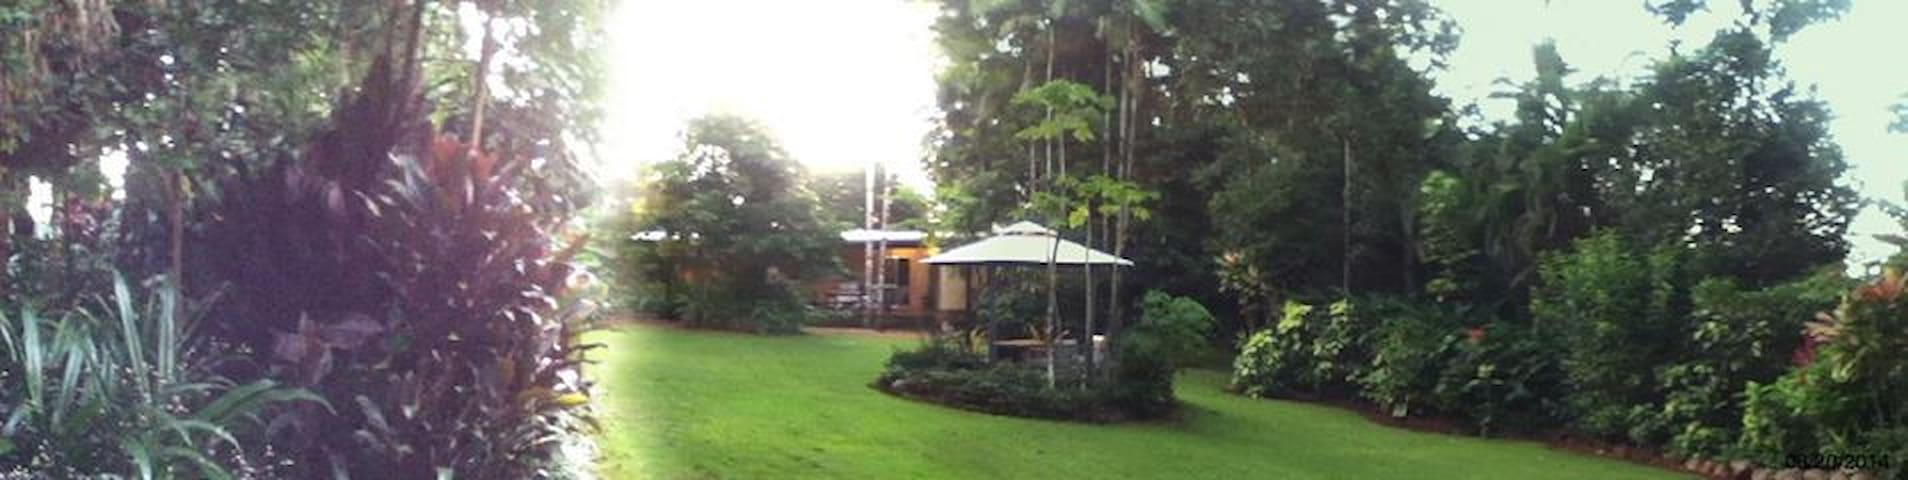 Gecko Guesthouse in the rainforest - Camp Creek - Bed & Breakfast